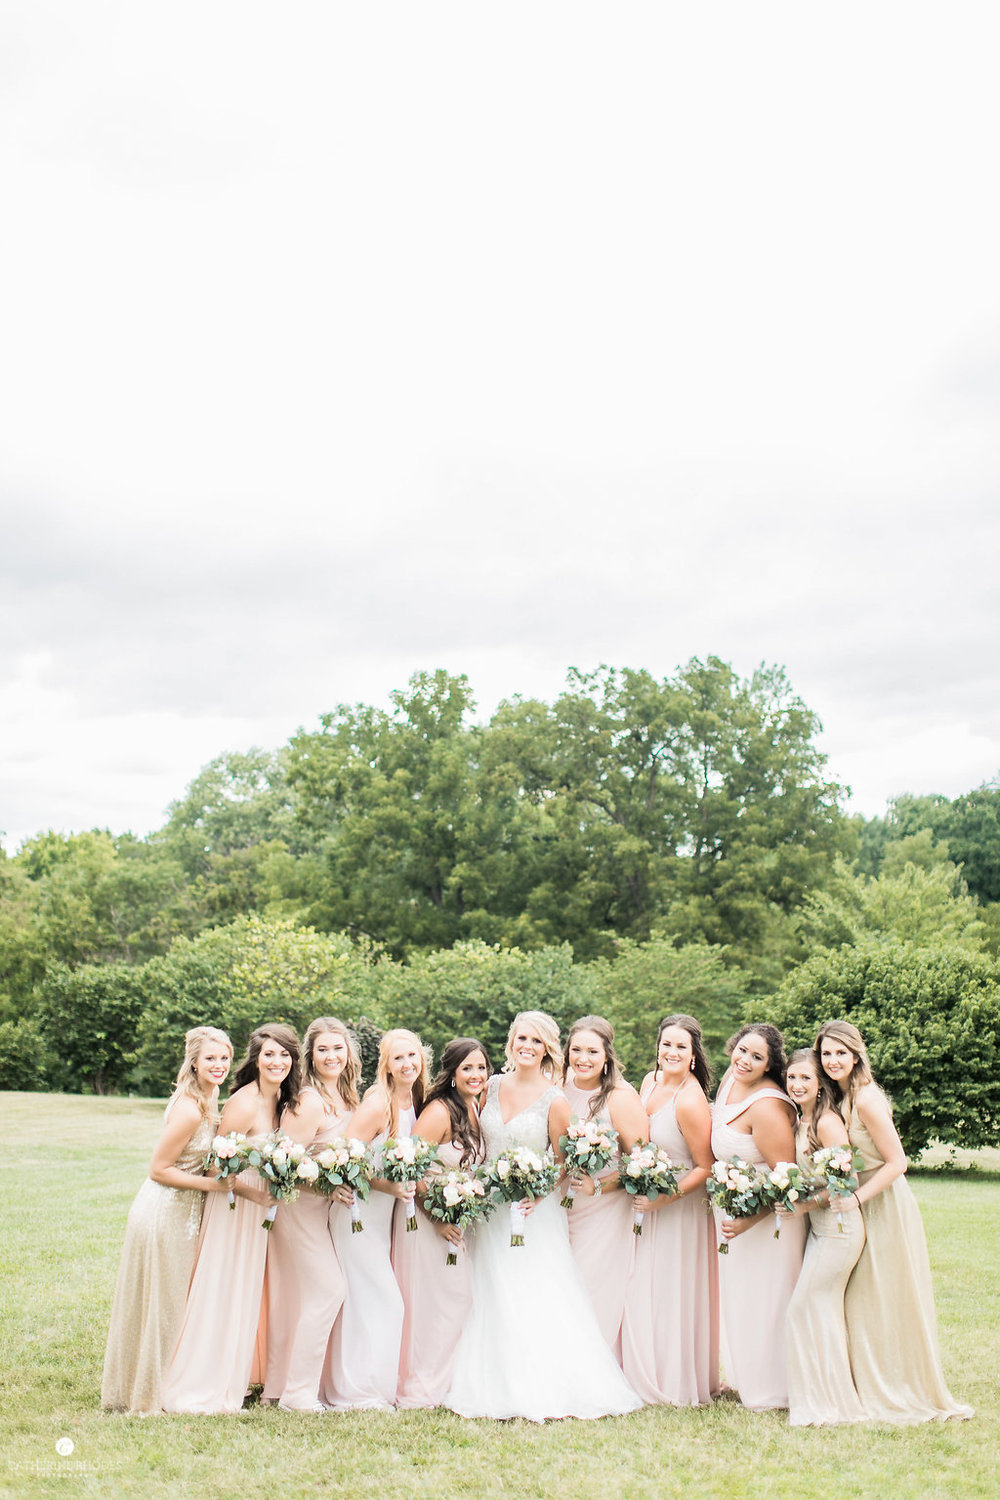 KimballBallroomWedding_Portraits_KenzieDrew_Portraits_Catherinerhodesphotography(121of305)-Edit.jpg